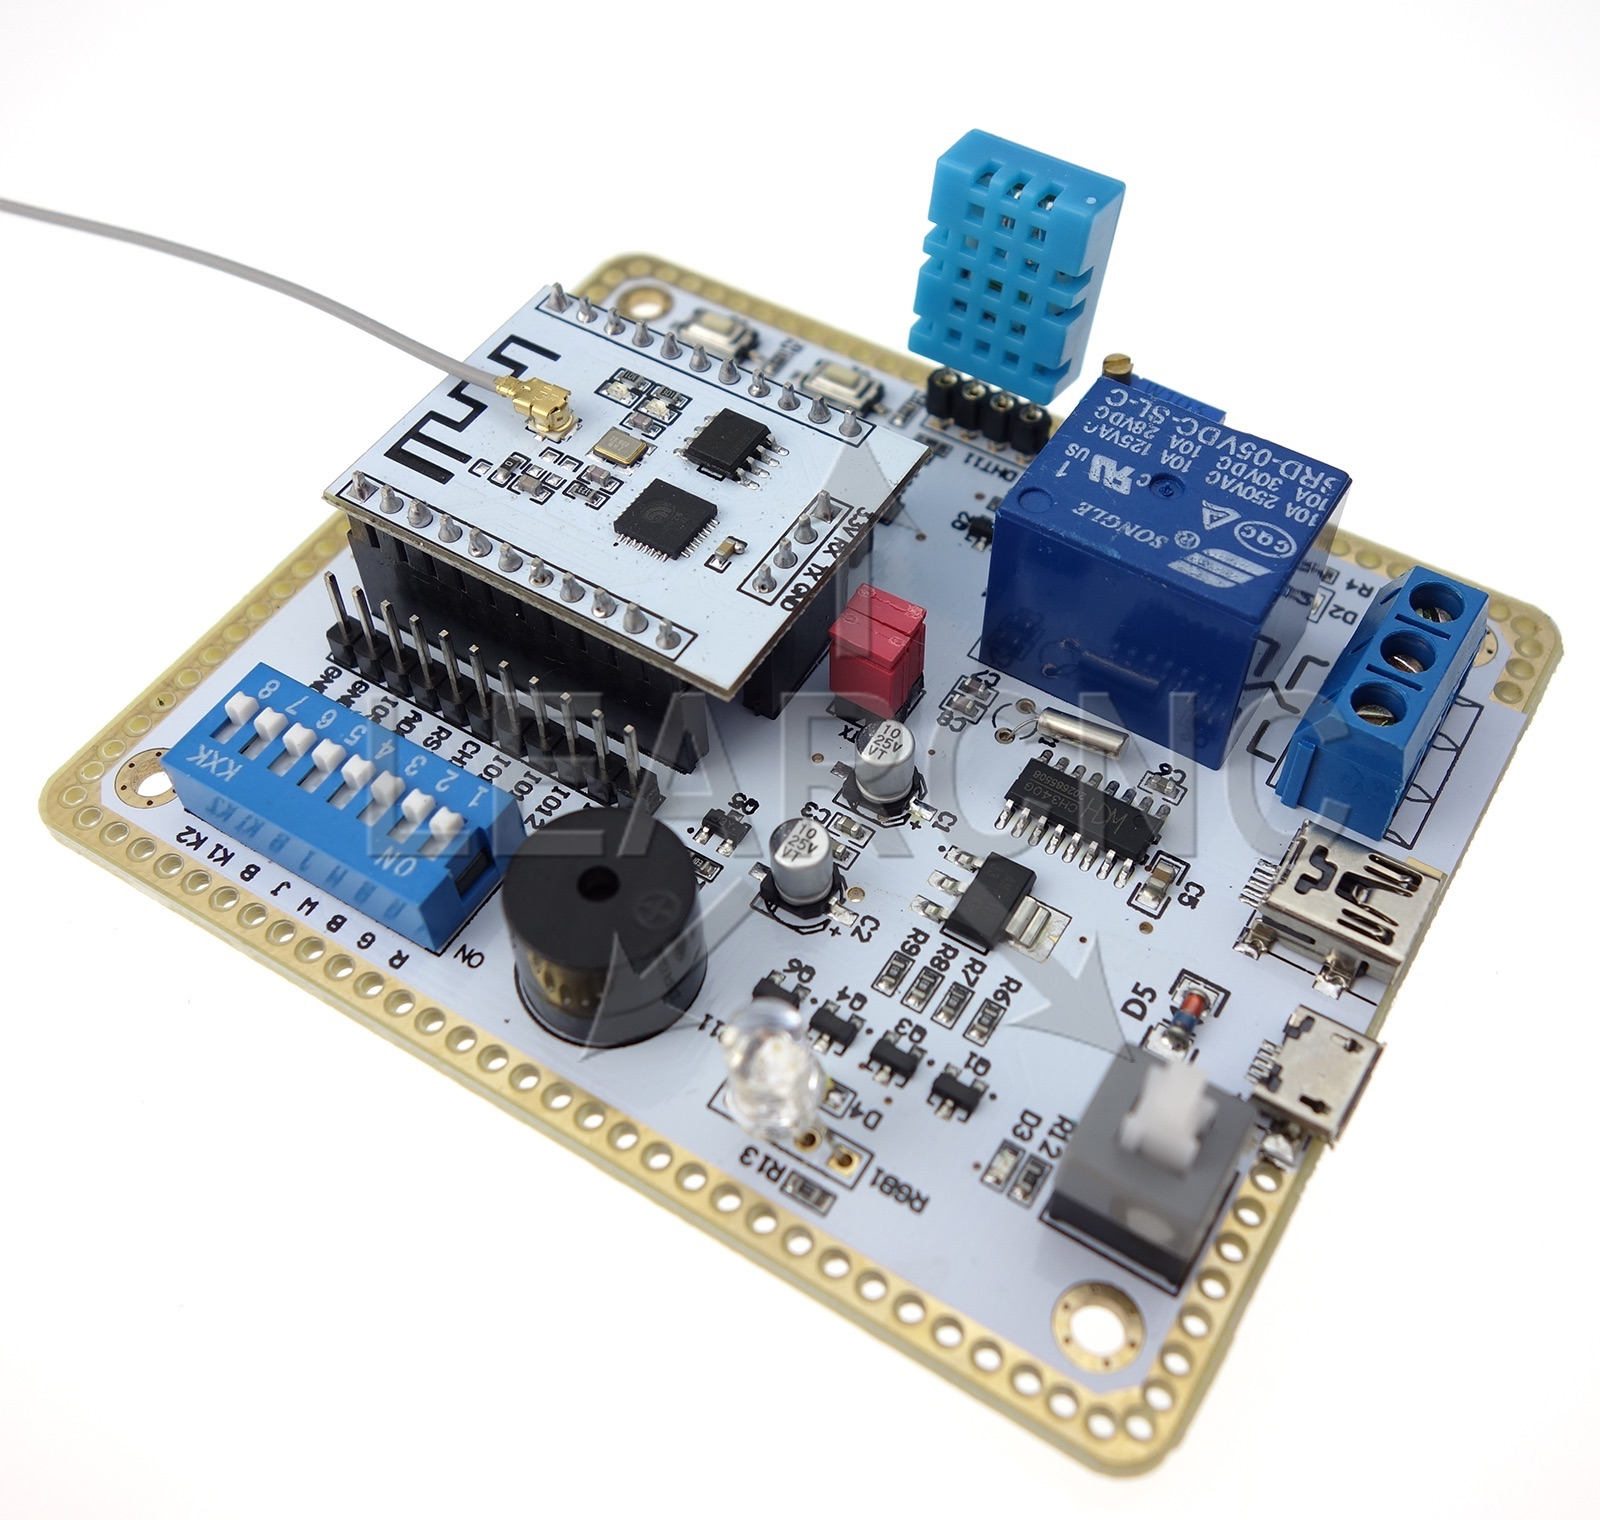 Esp nodemcu wifi development kit